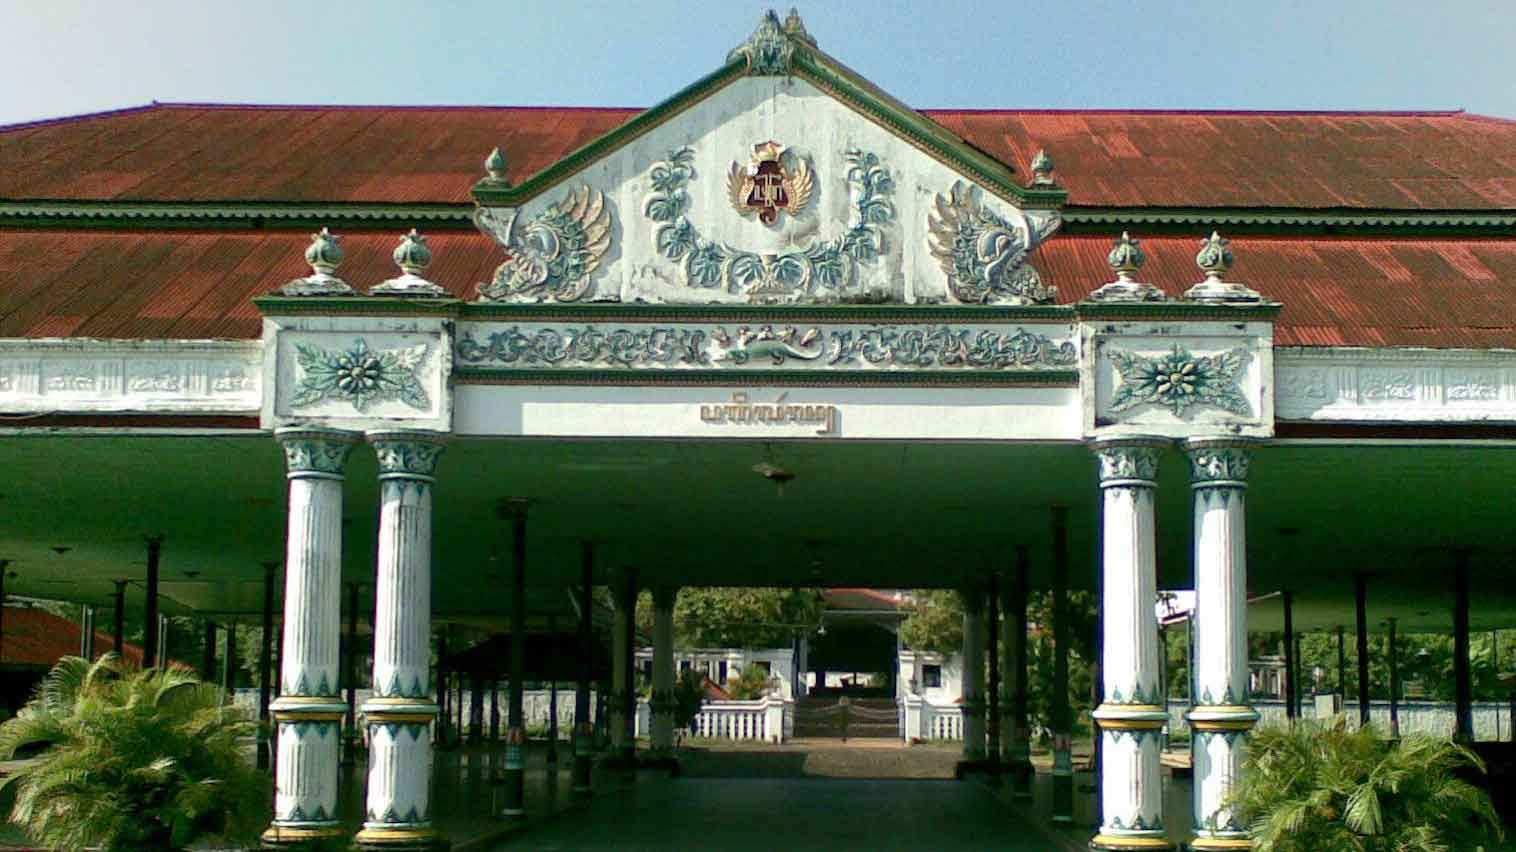 Pagelaran Pavilion Yogyakarta, Sultan Palace Yogyakarta – What You Need to Know Vacation Bali ...